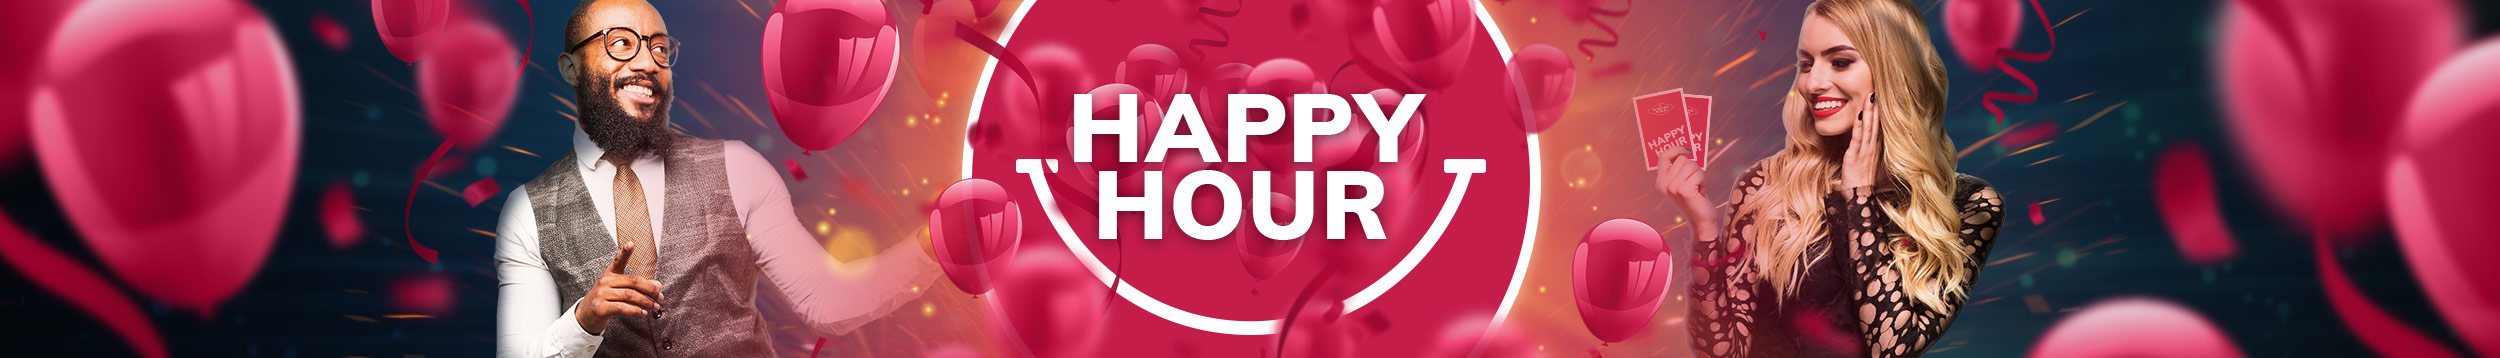 Livekasinon Happy Hour!